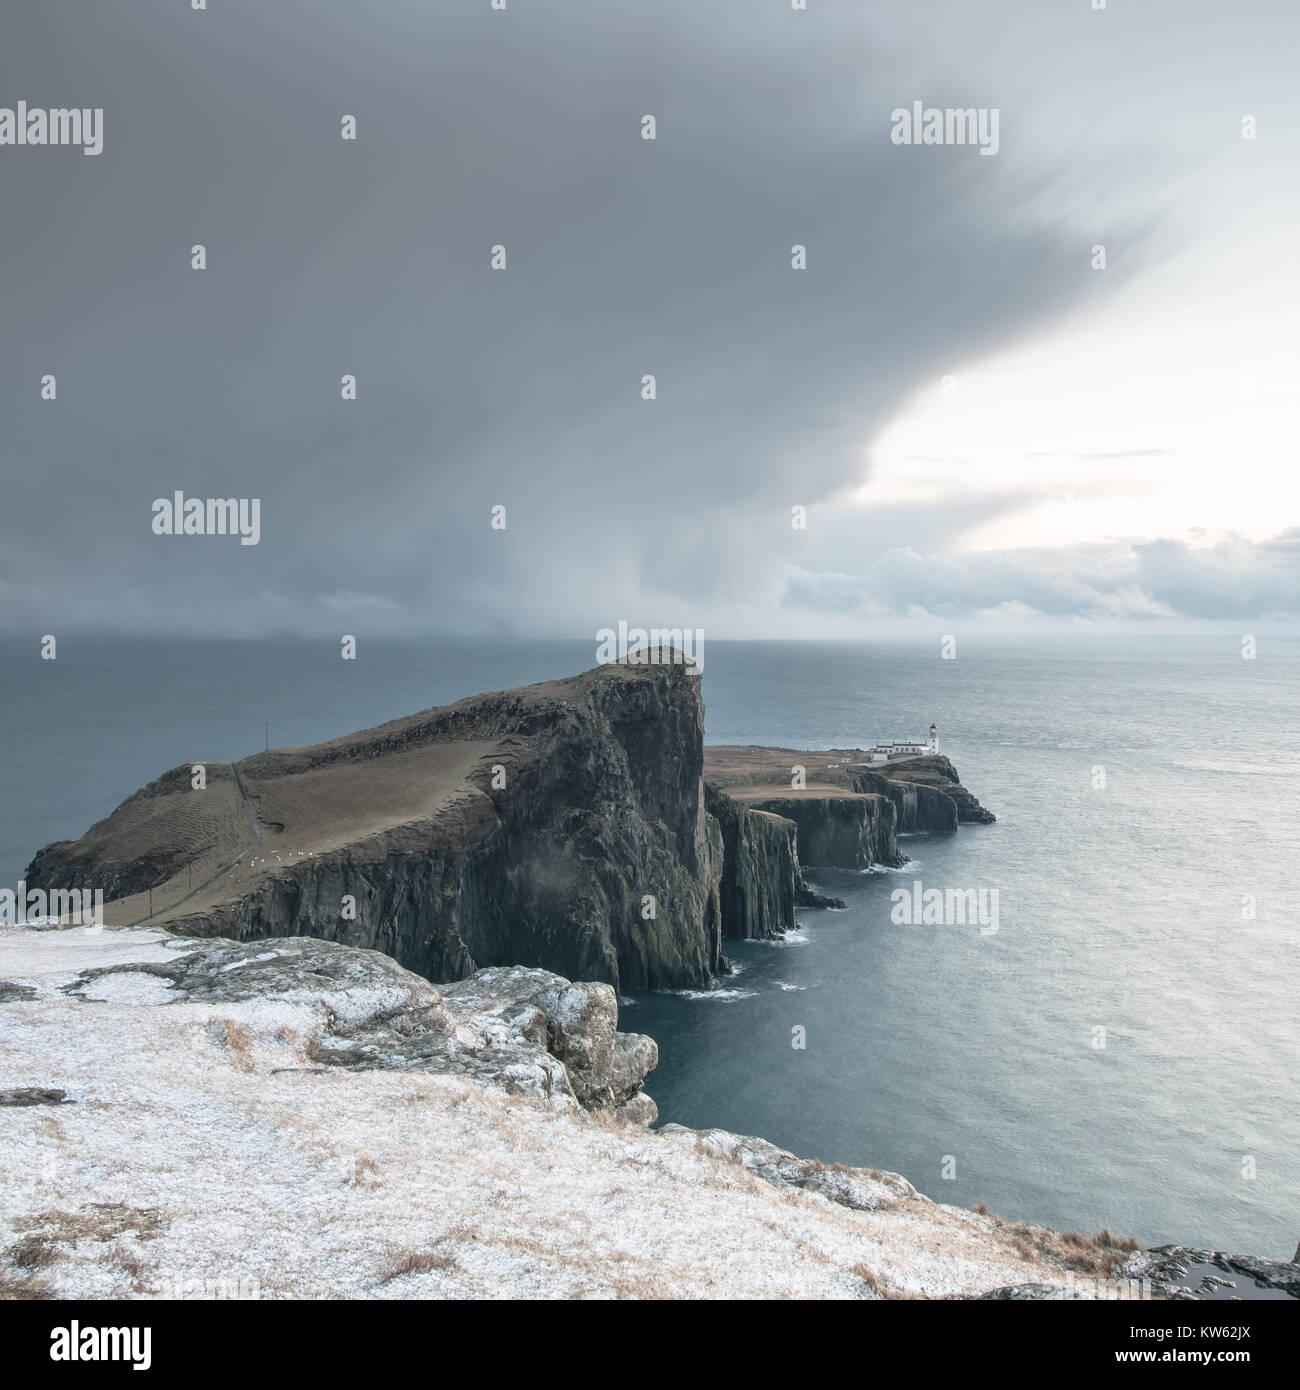 Neist Point Peninsula with White Lighthouse - Isle of Skye Landscape with Stormy Clouds on Sky, Dramatic Cliffs Stock Photo